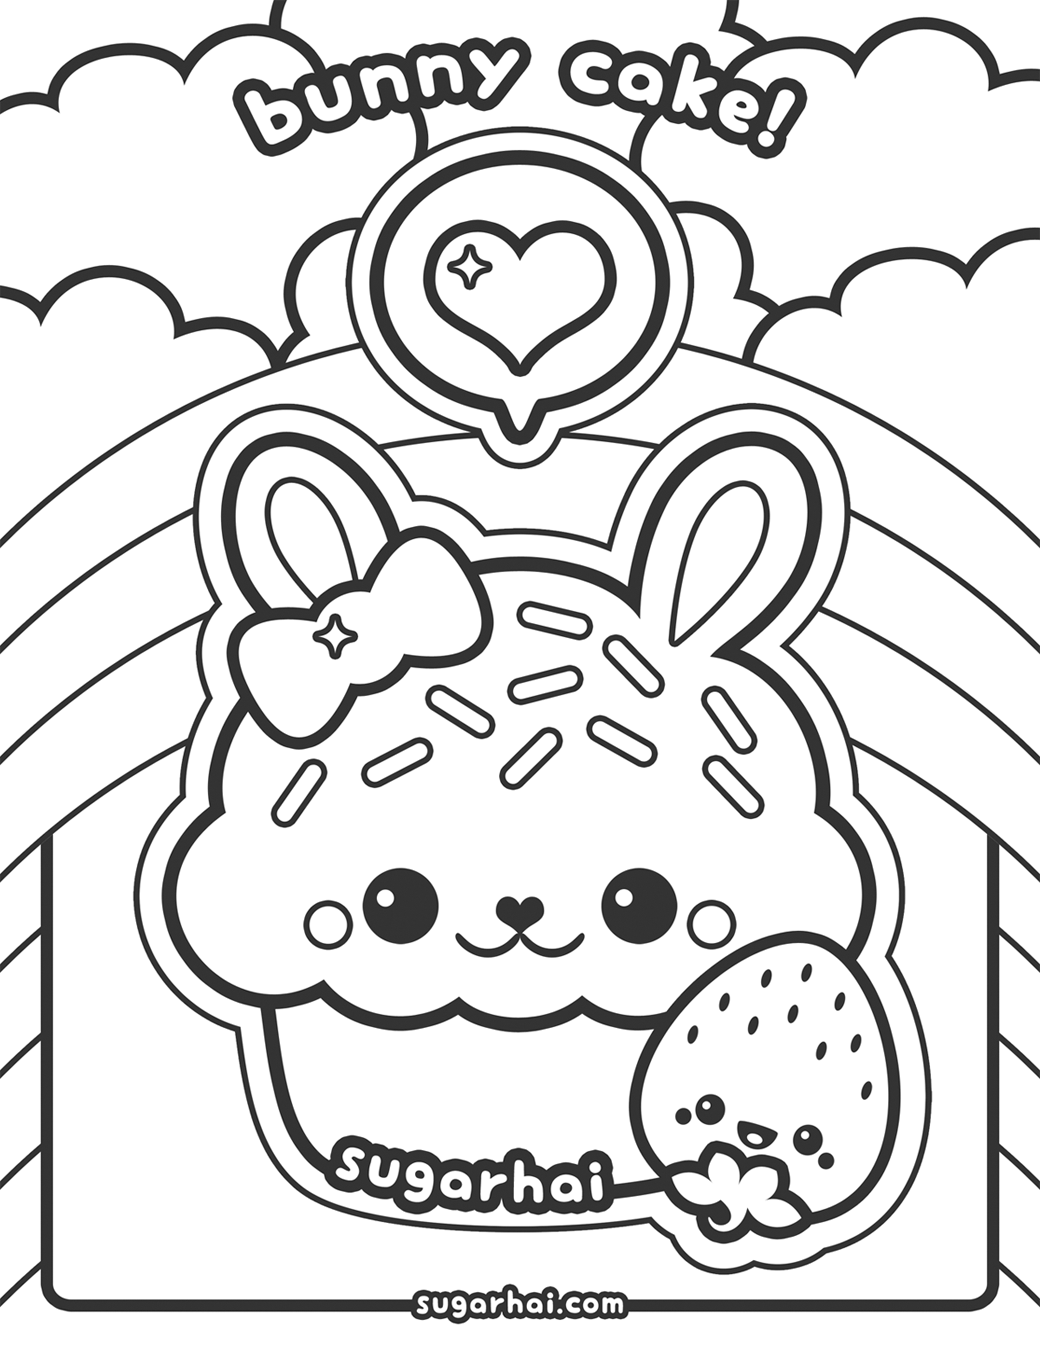 Free Bunny Cake Coloring Page Bunny Cupcakes Bunny And Easter